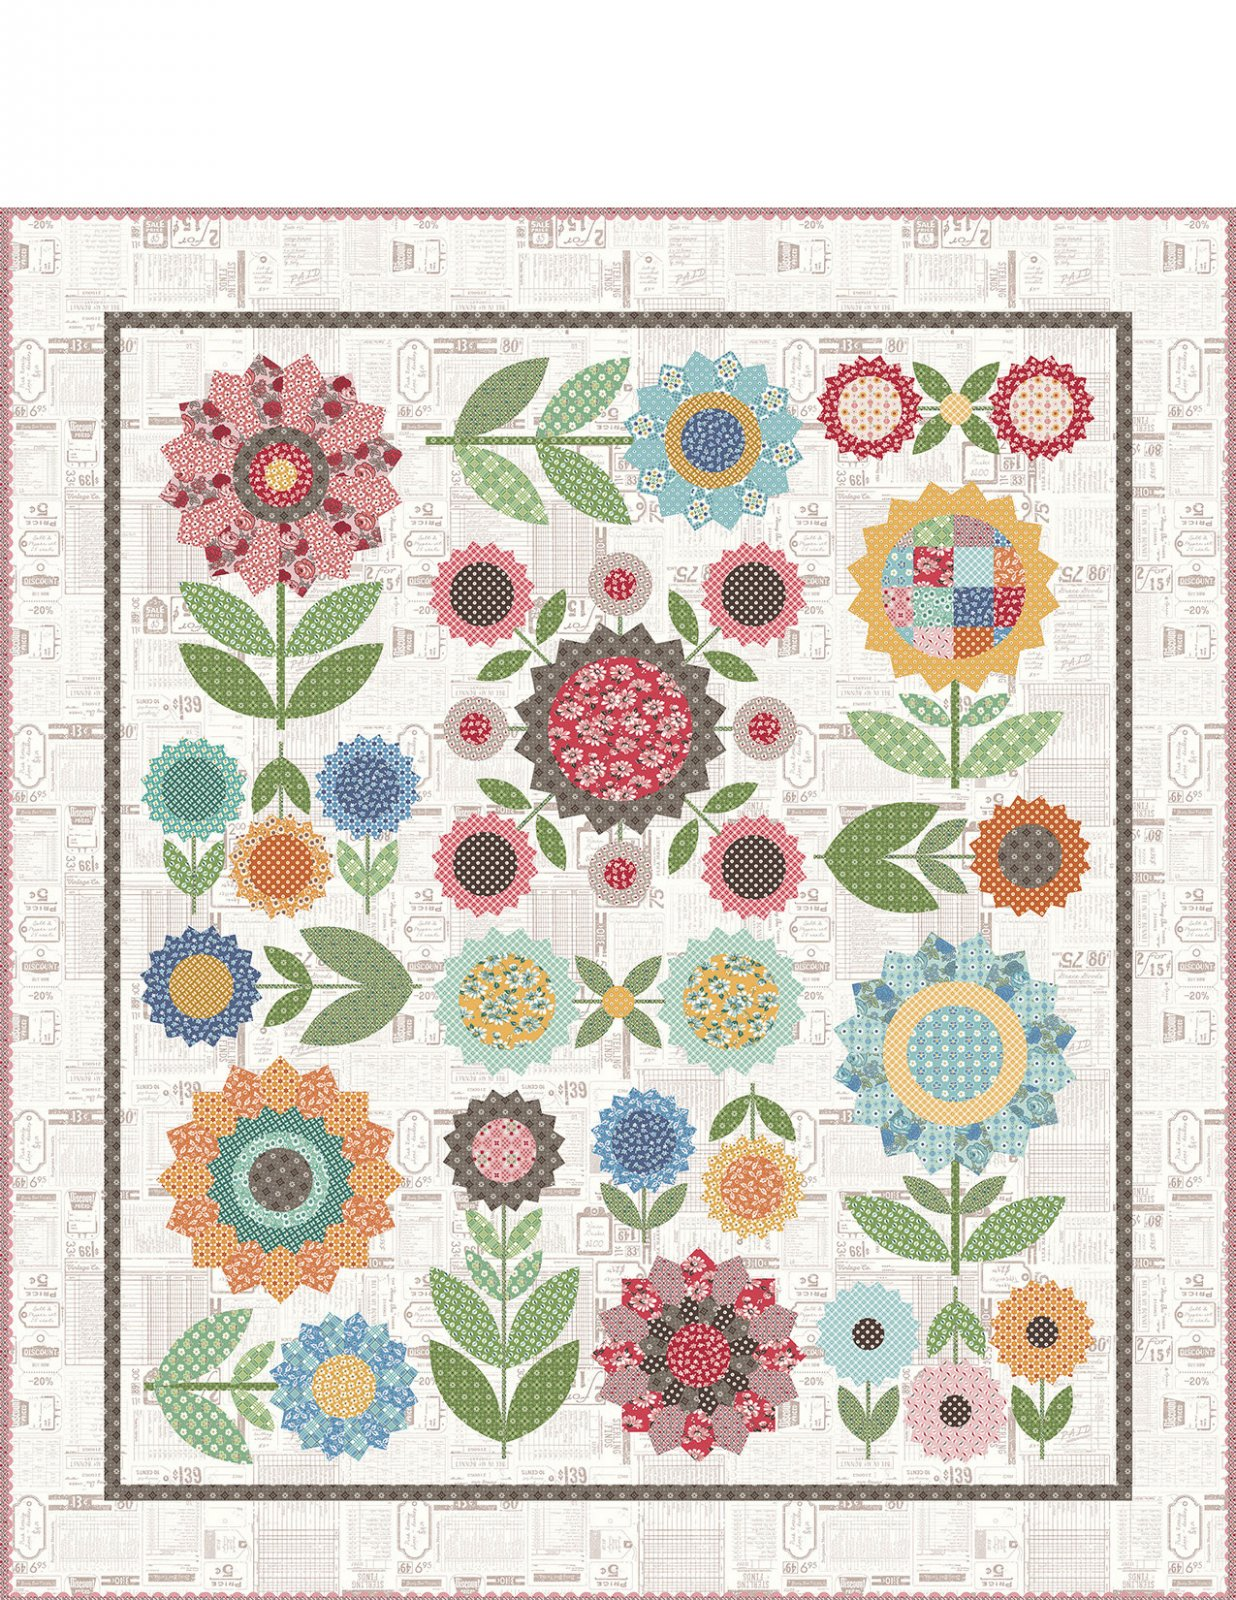 PRE-ORDER Kit for Lori Holt Sew Along Featuring Flea Market Fabric Collection